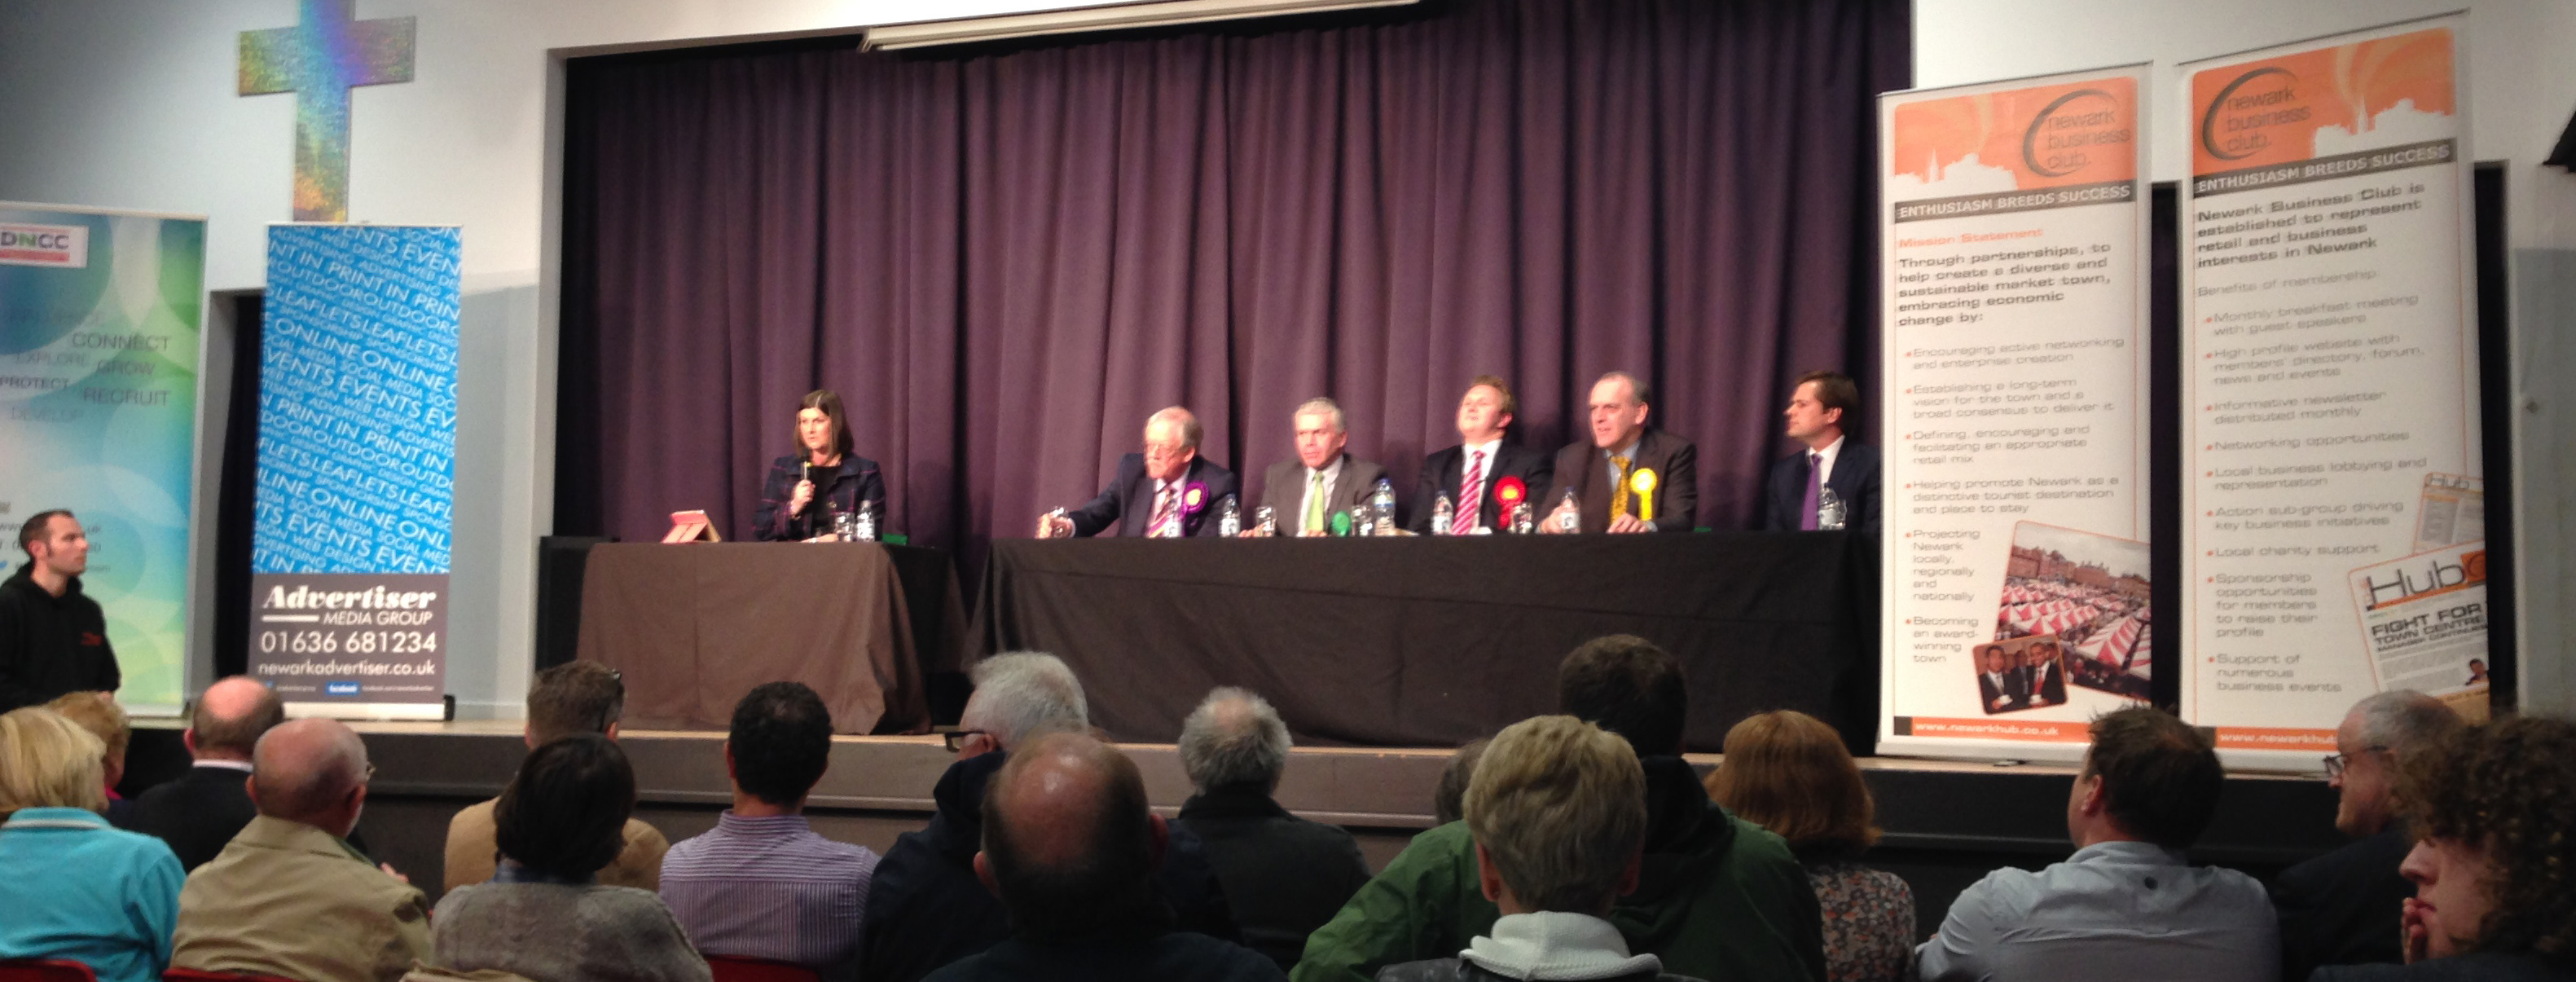 Newark by-election Hustings